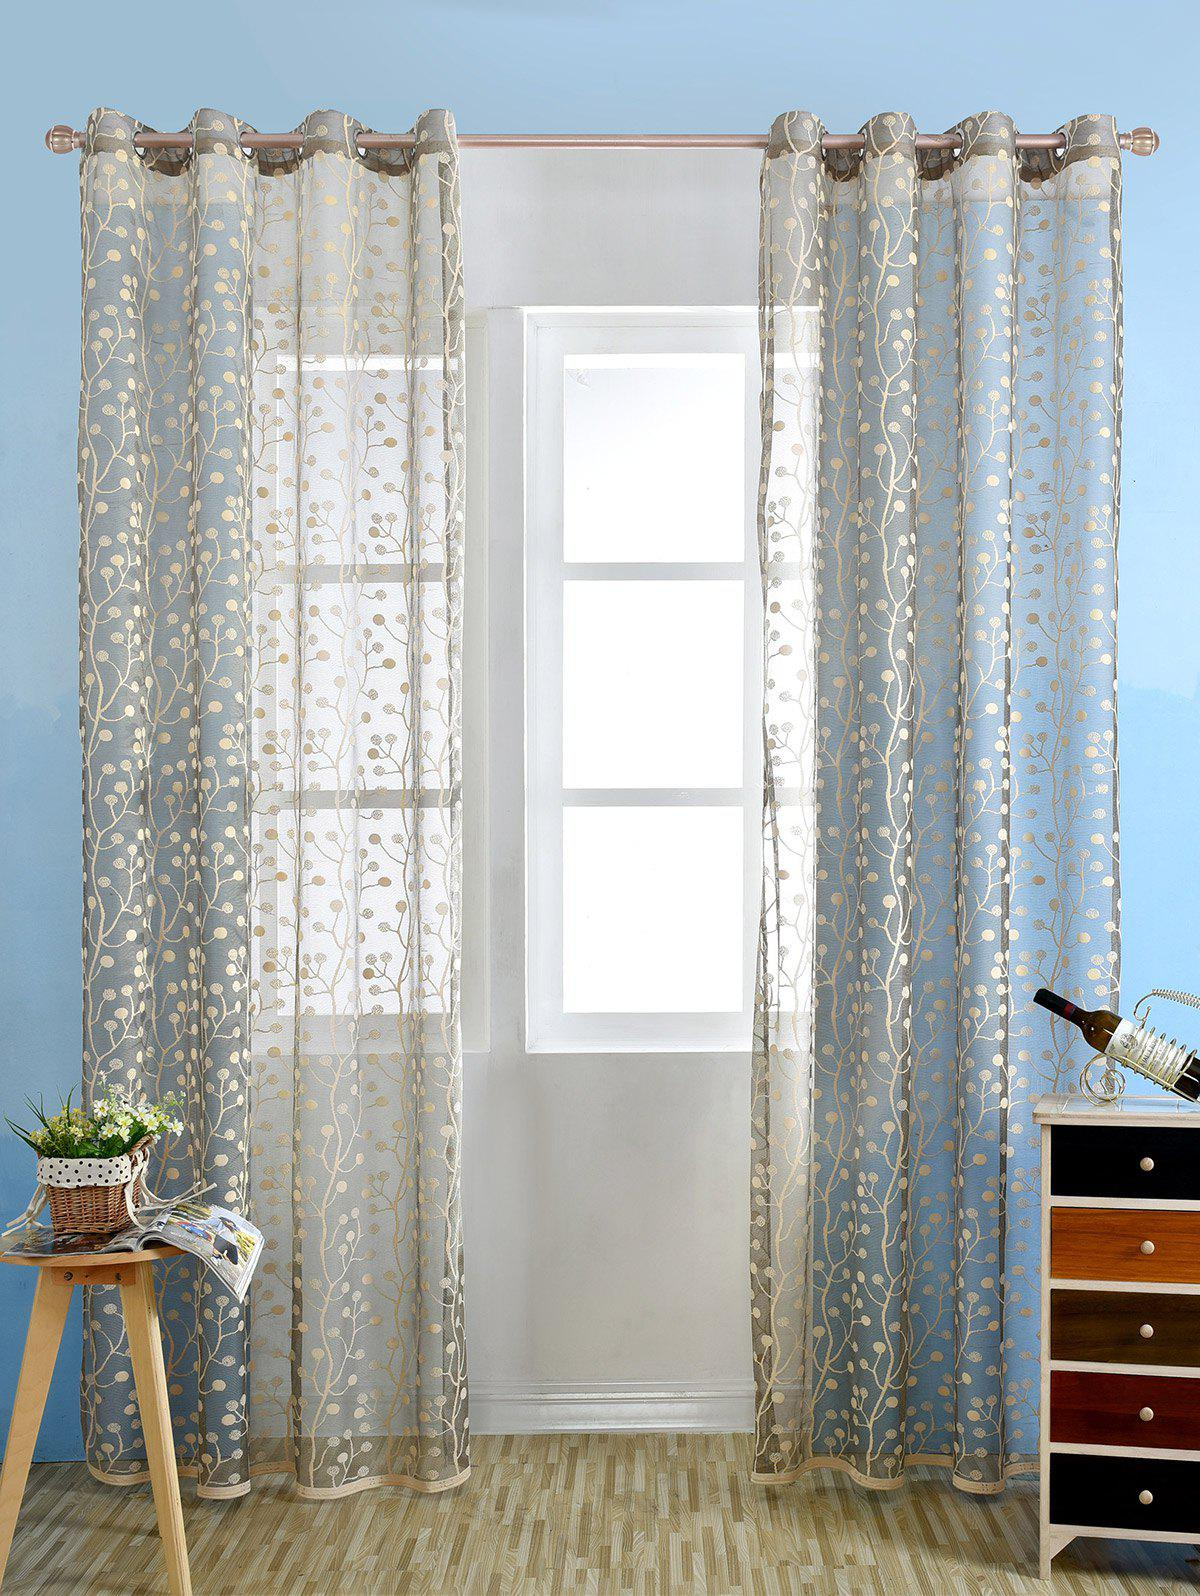 Griege Embroidered Sheer Tulle Fabric Window Curtain